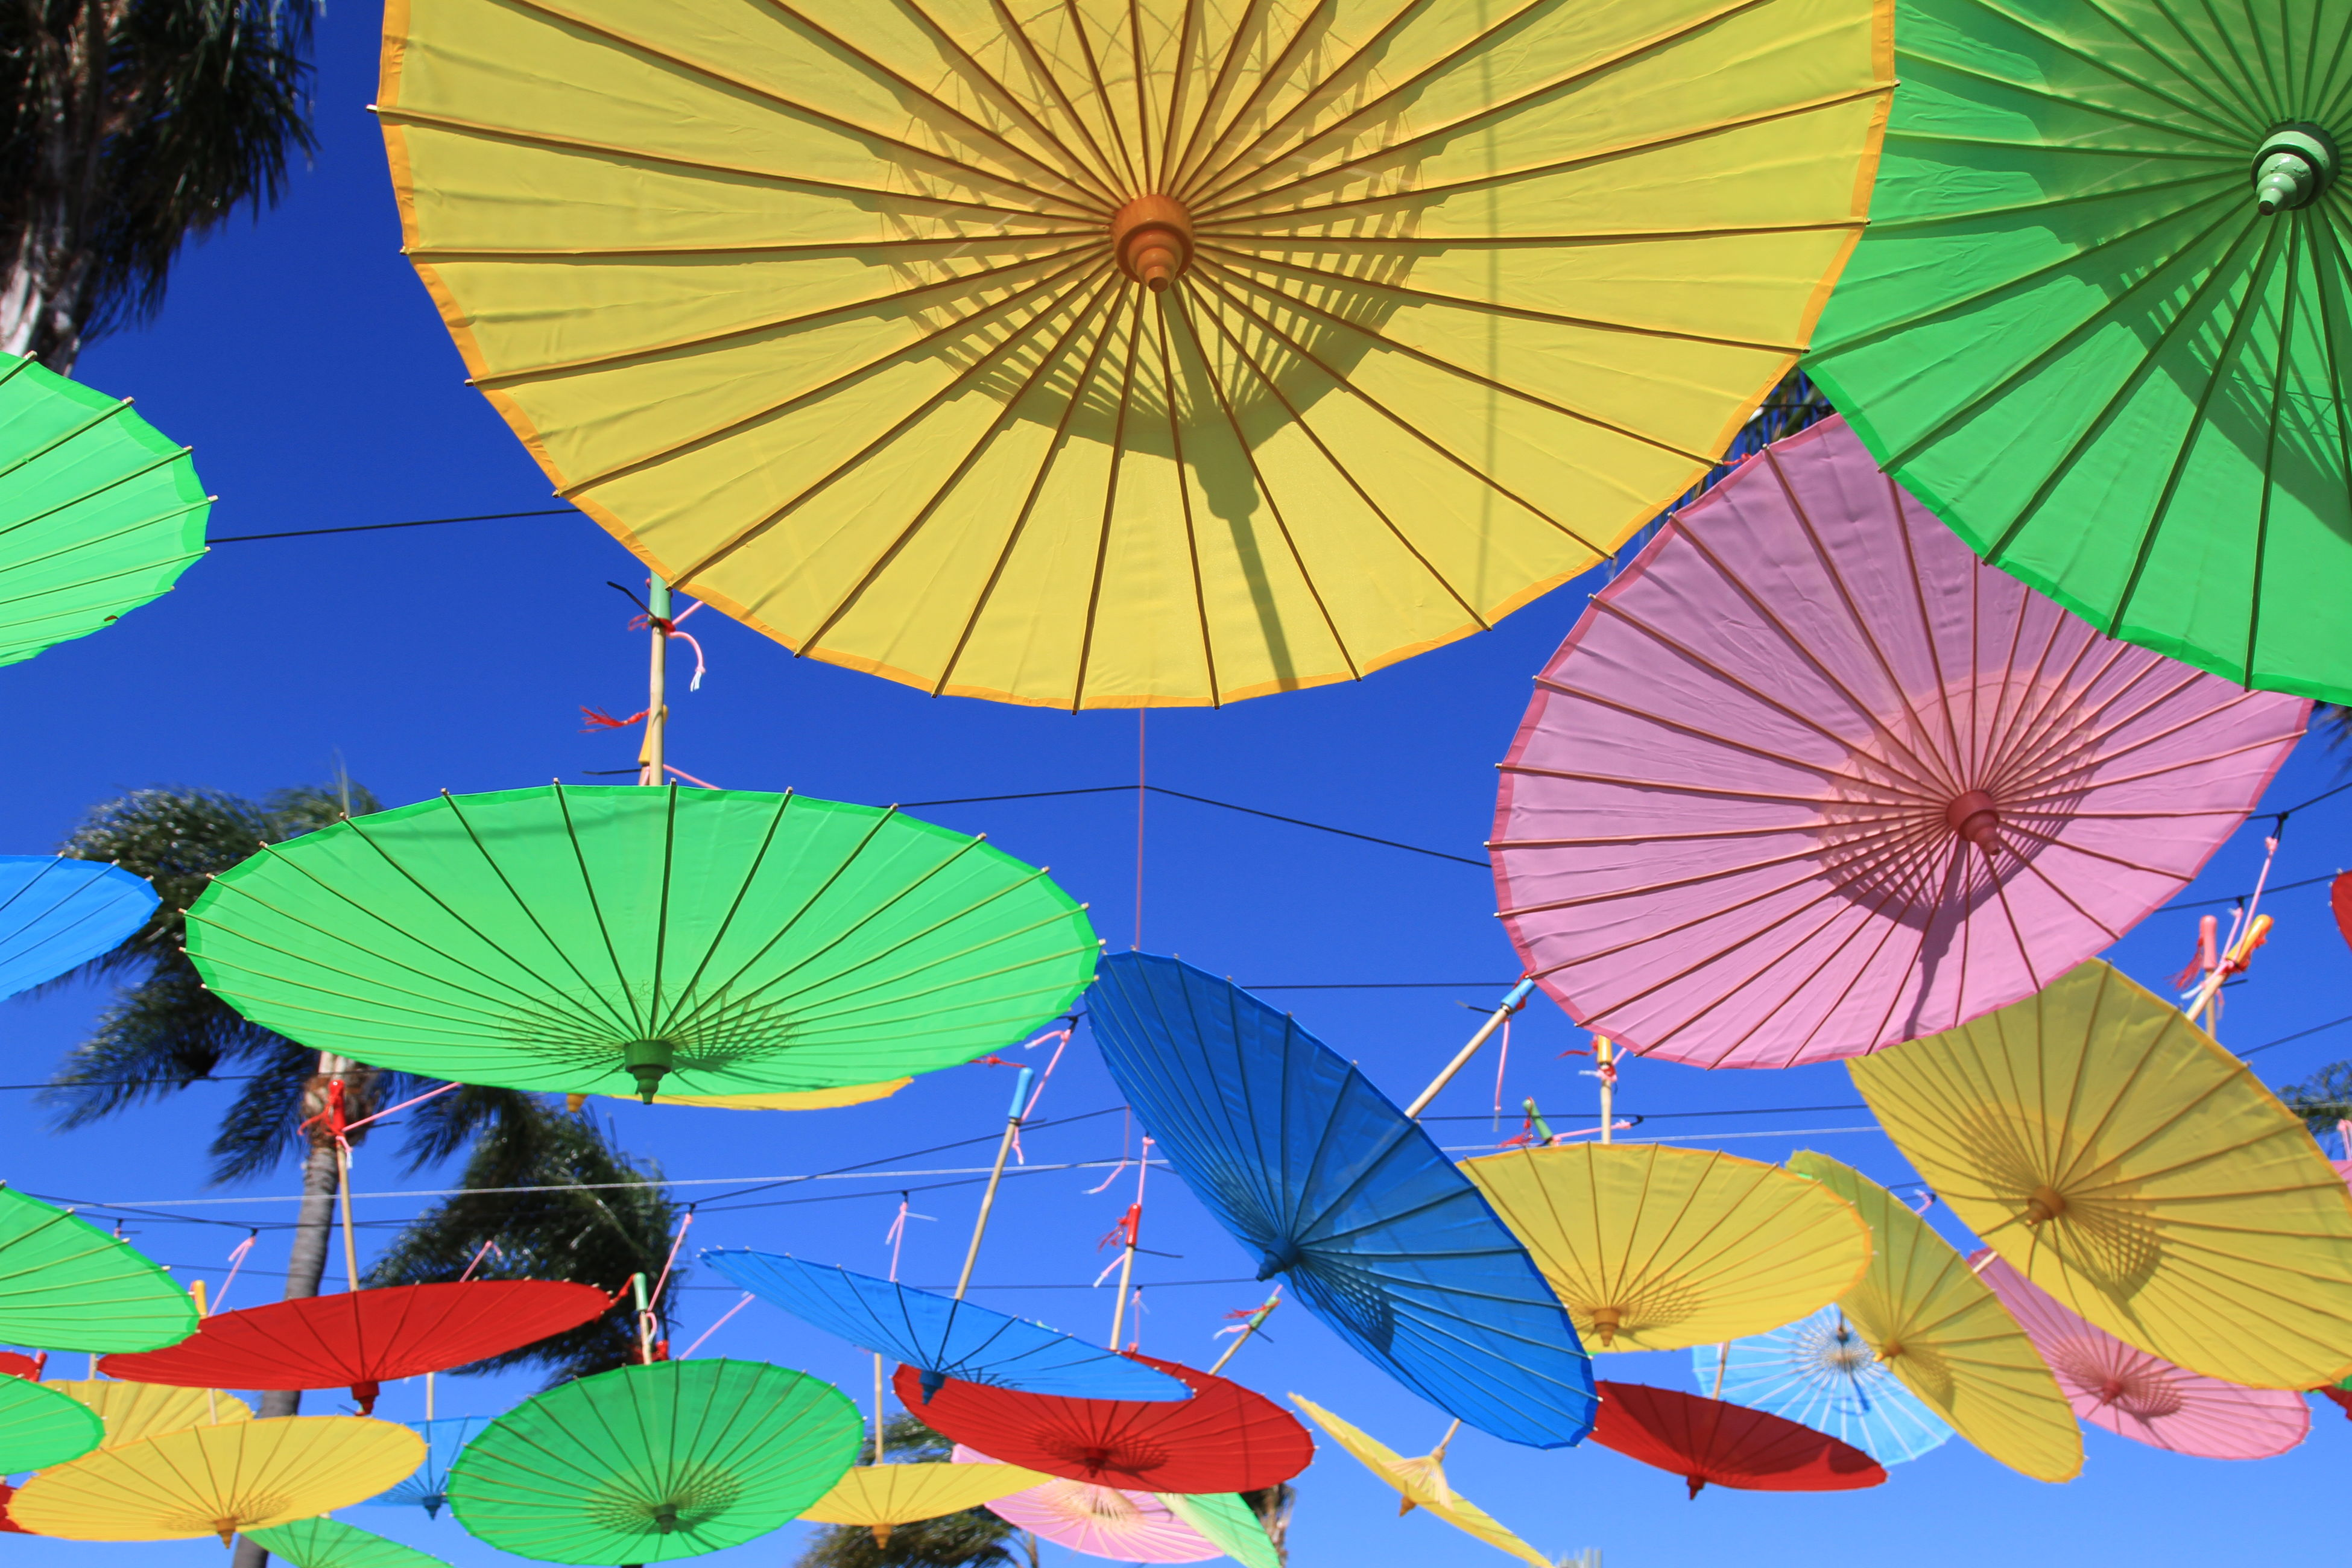 low angle view, protection, umbrella, multi colored, hanging, group of objects, close-up, colorful, sunshade, repetition, shelter, directly below, day, parachute, variation, outdoors, sky, arrangement, adventure, large group of objects, no people